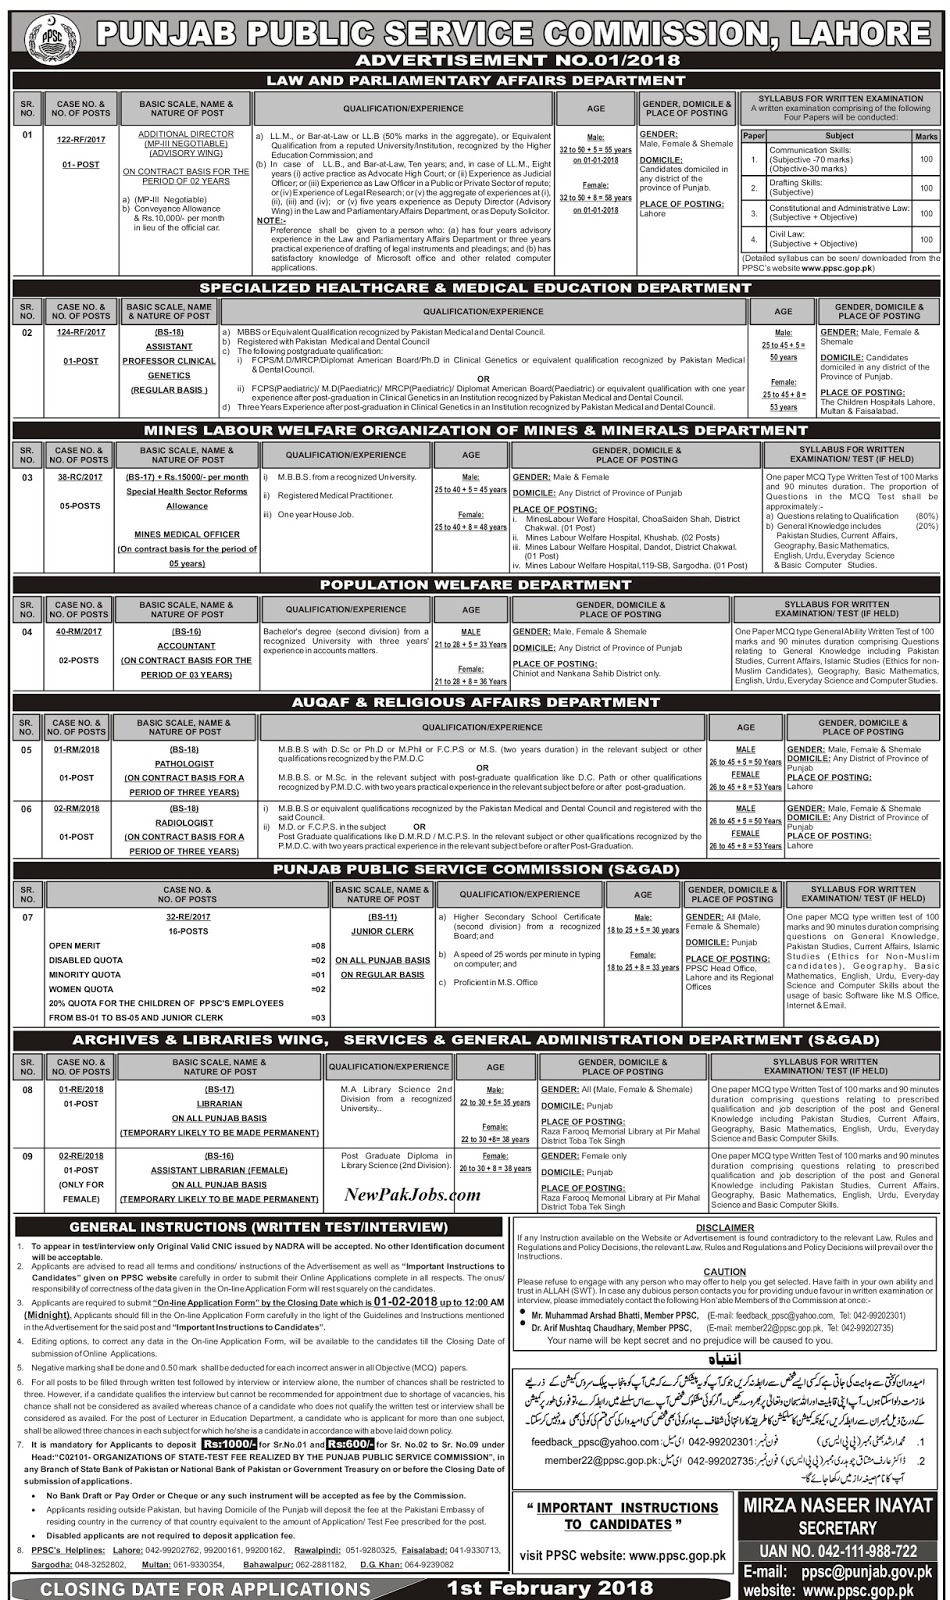 Additional Director--01  Assistant Professor Clinical Genetics (BPS-18)--01  Mines Medical Officer (BPS-17)--05  Accountant (BPS-16)--02  Pathologist (BPS-18)--01  Radiologist (BPS-18)--01  Junior Clerks (BPS-11)--11  Librarian (BPS-17)--01  Assistant Librarian (Female Only) (BPS-16)--01